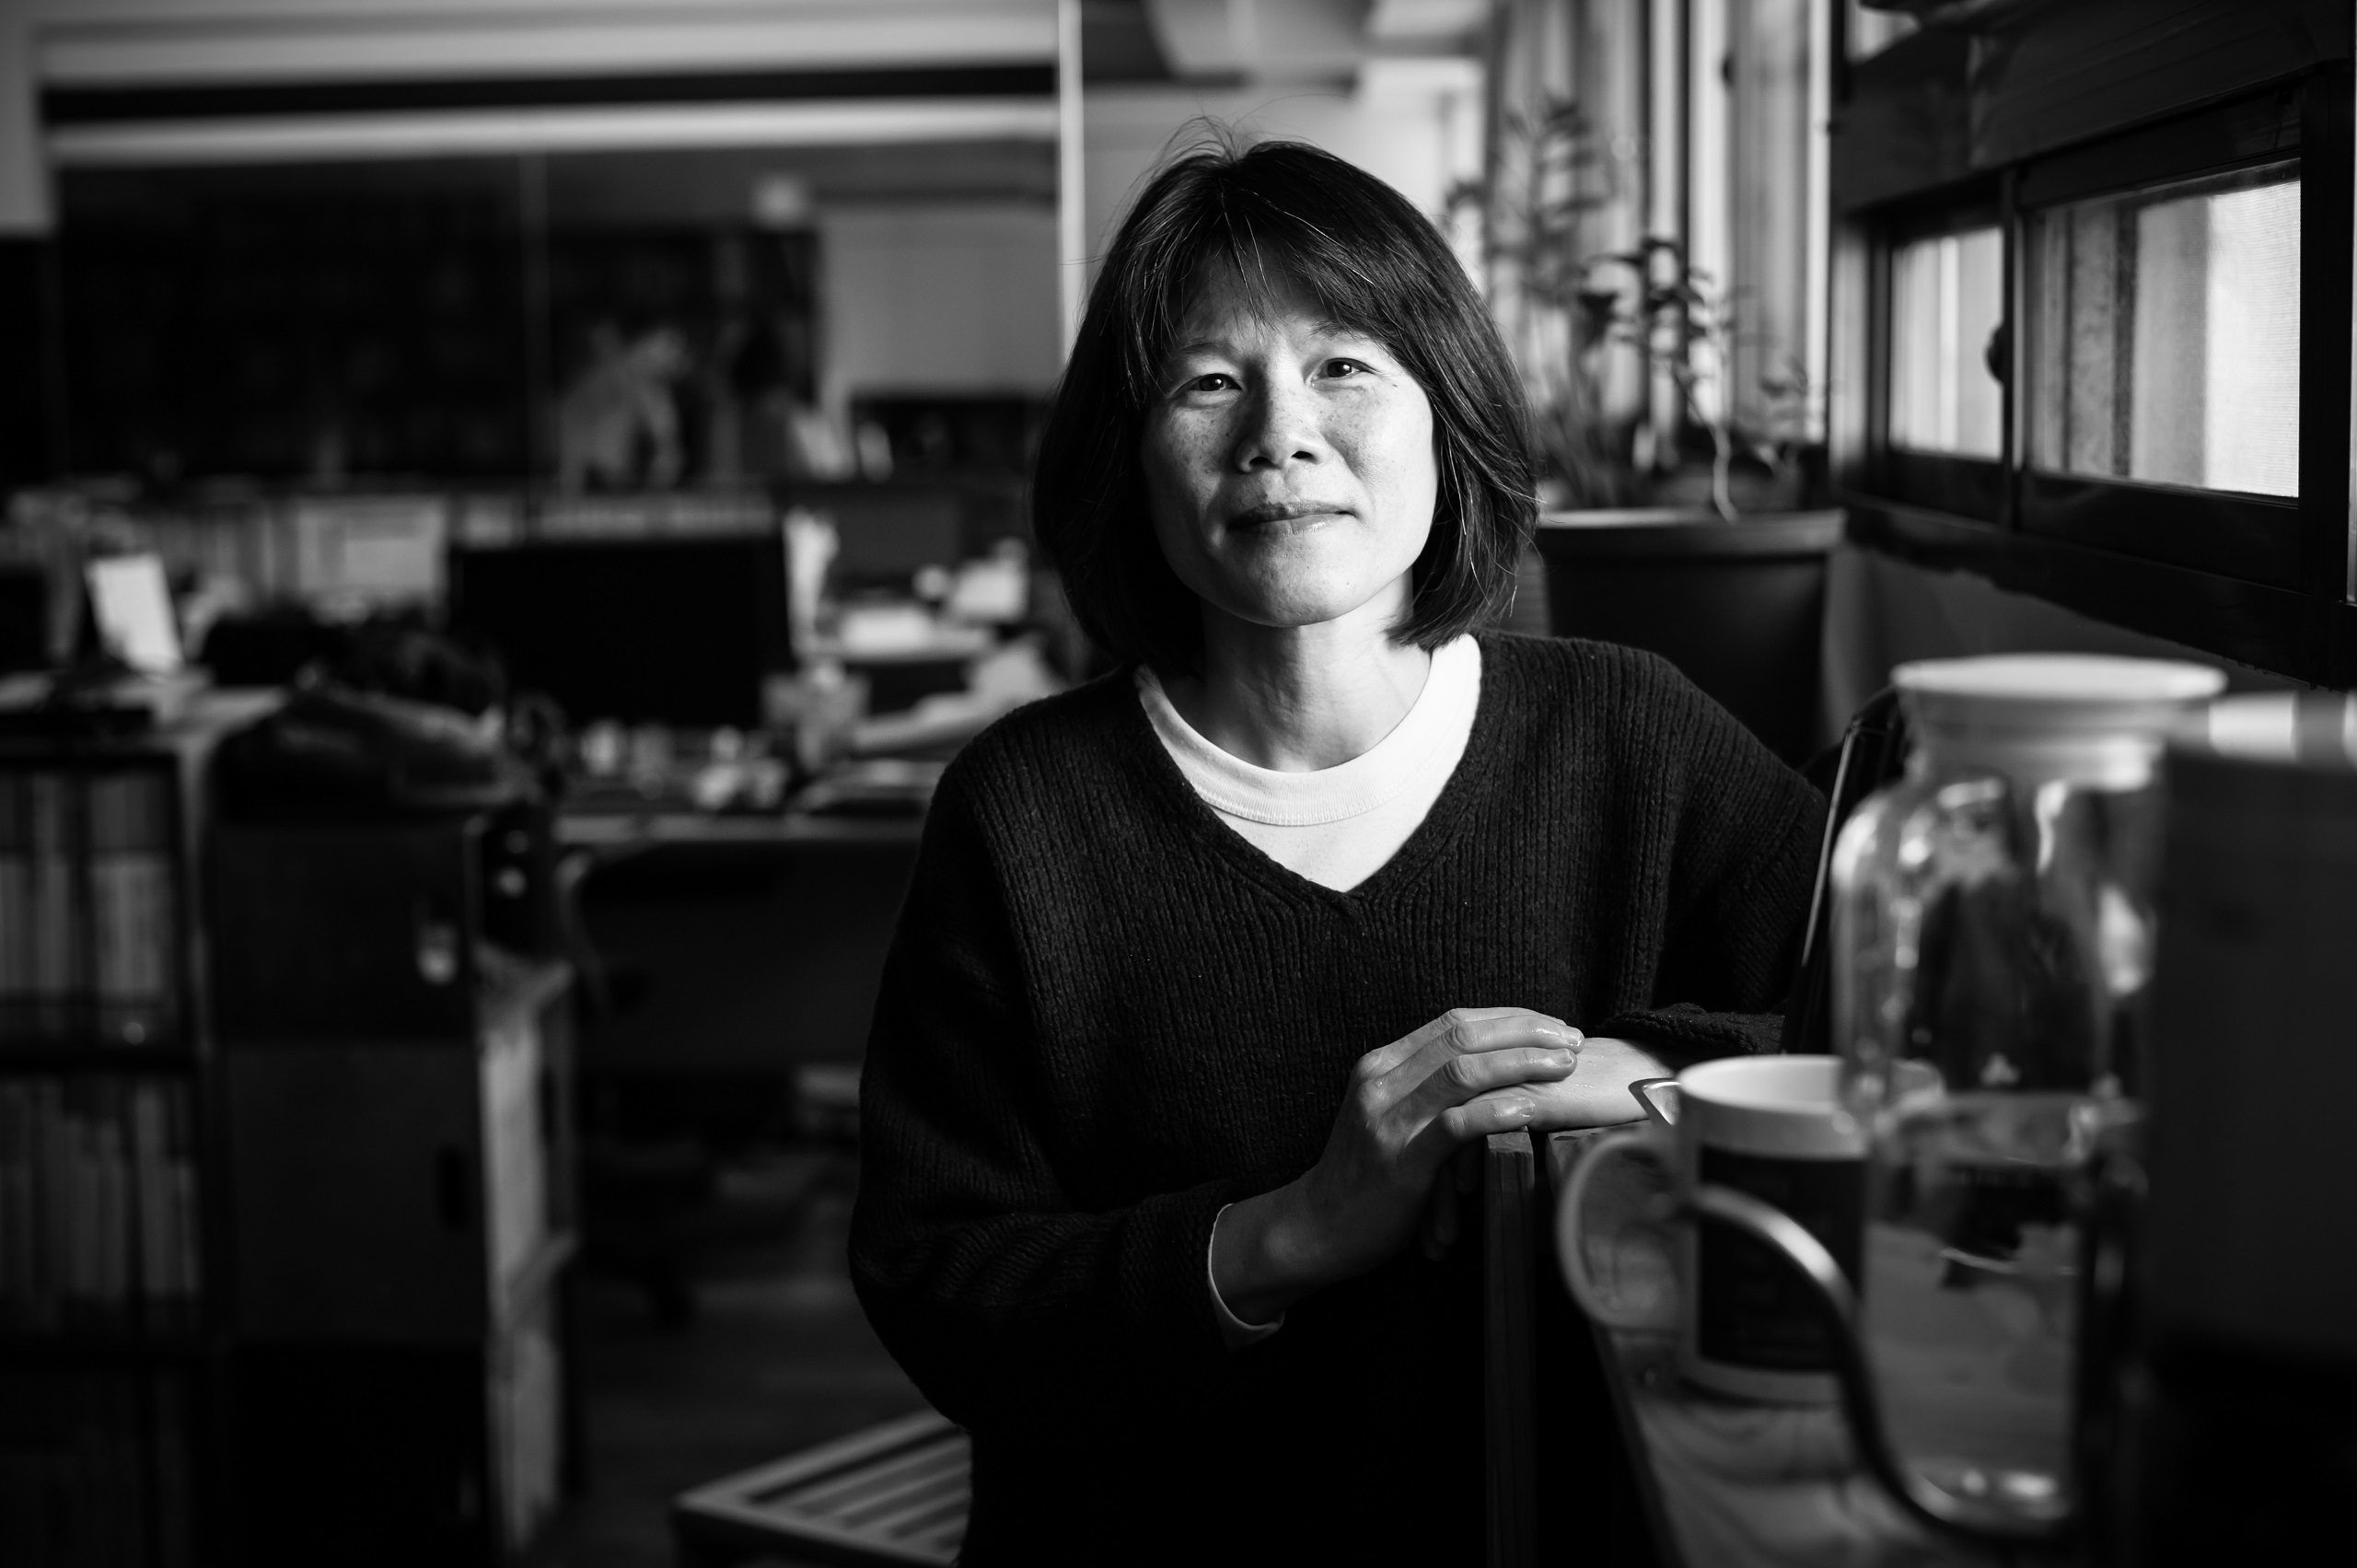 Yumin is a long-time animal advocate who works with EAST (Environment and Animal Society of Taiwan). Taiwan, 2019. Jo-Anne McArthur / #unboundproject / We Animals Media